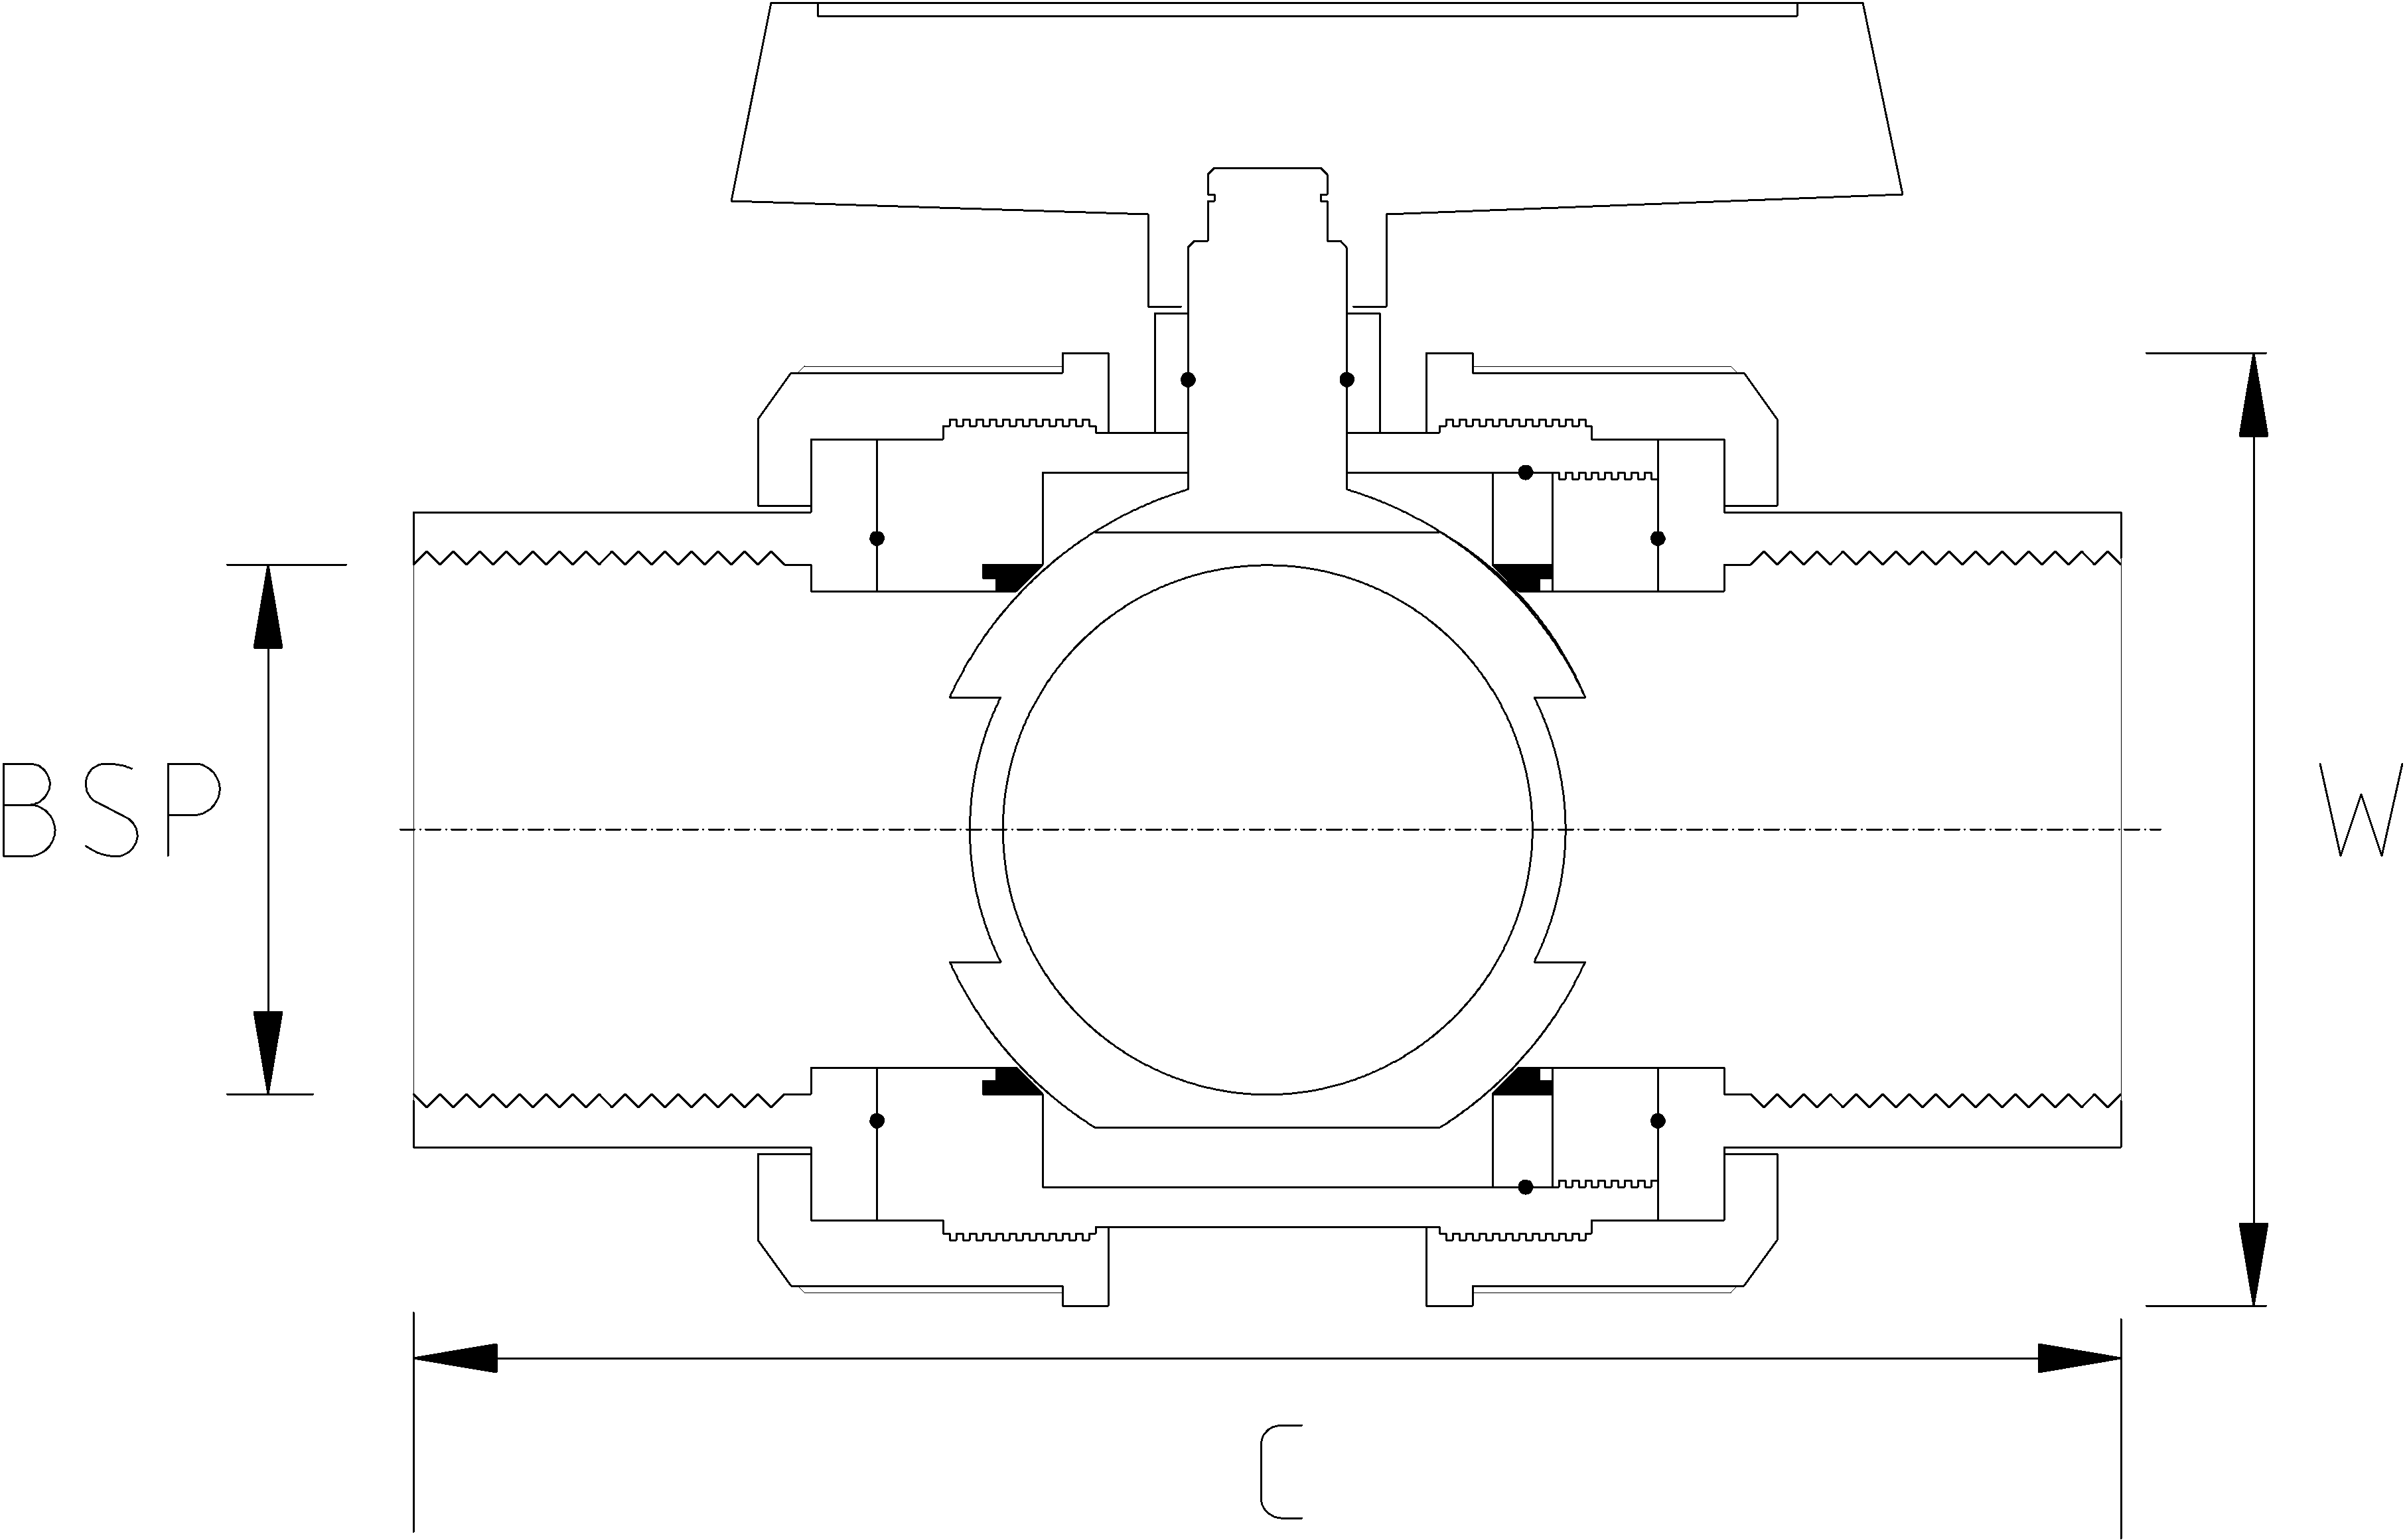 1 1/4 Inch Threaded Double Union Ball Valve Dimensions Drawing